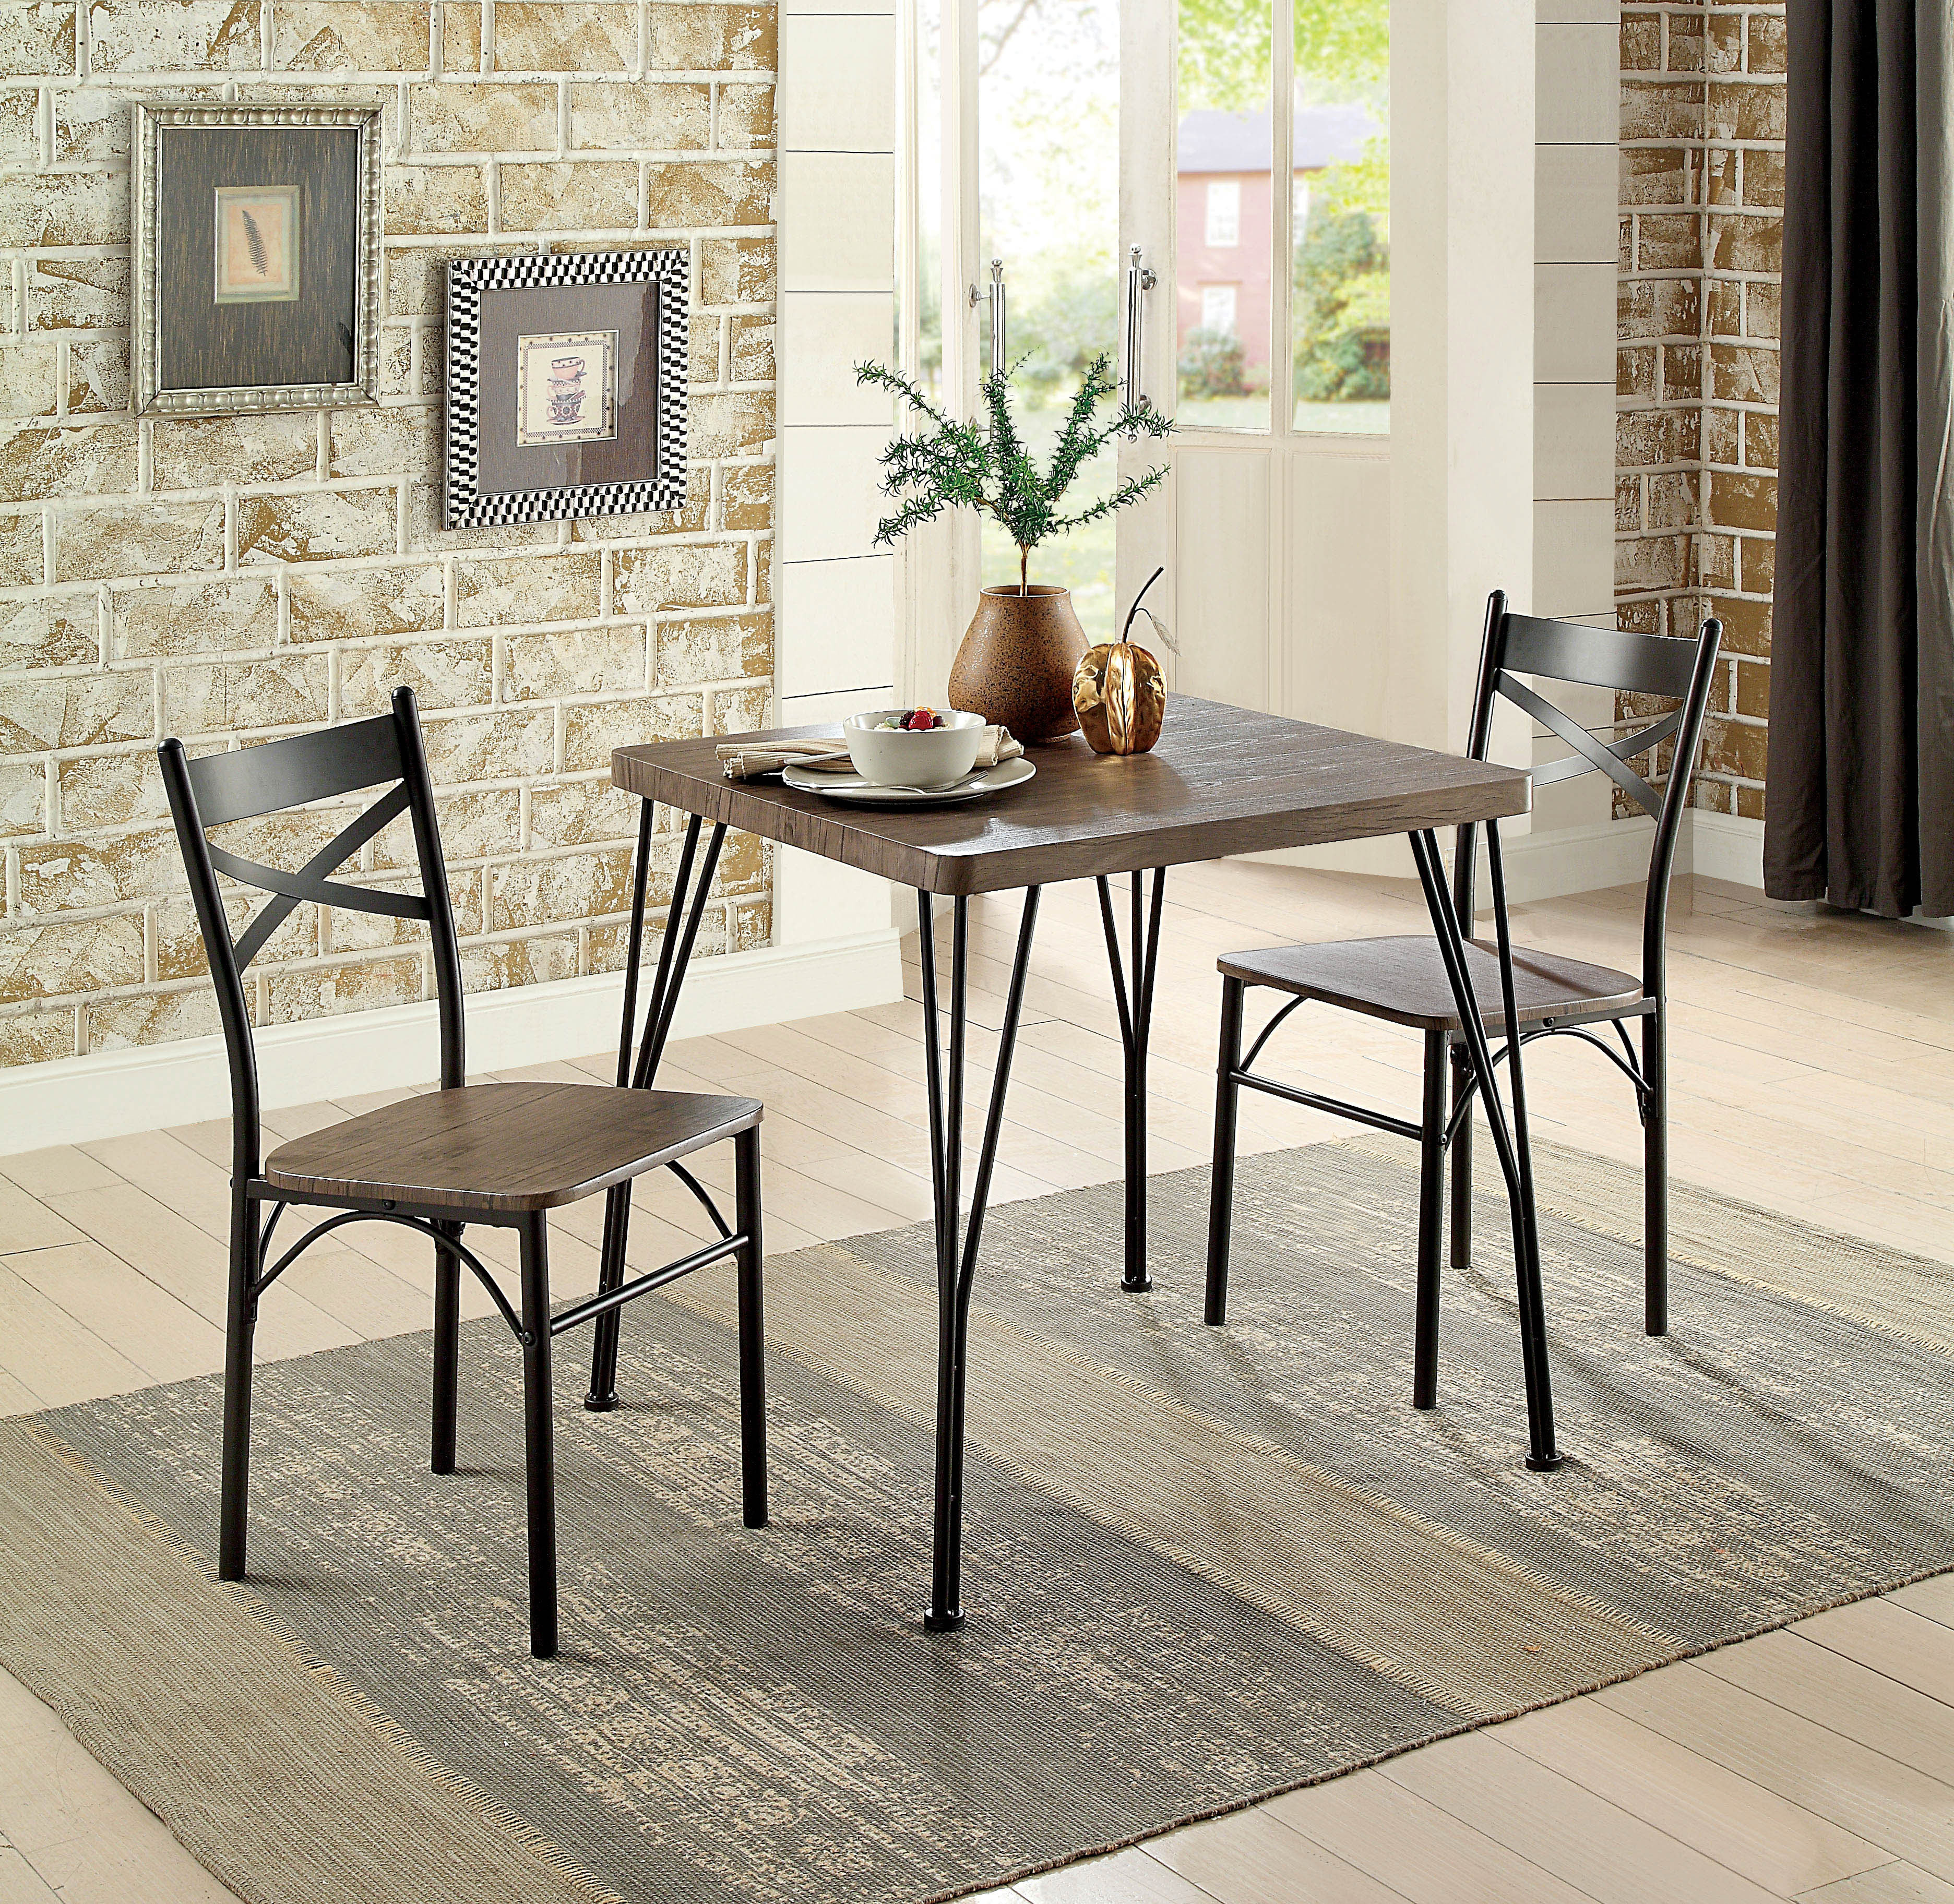 Guertin 3 Piece Dining Set For Popular Tejeda 5 Piece Dining Sets (View 7 of 20)